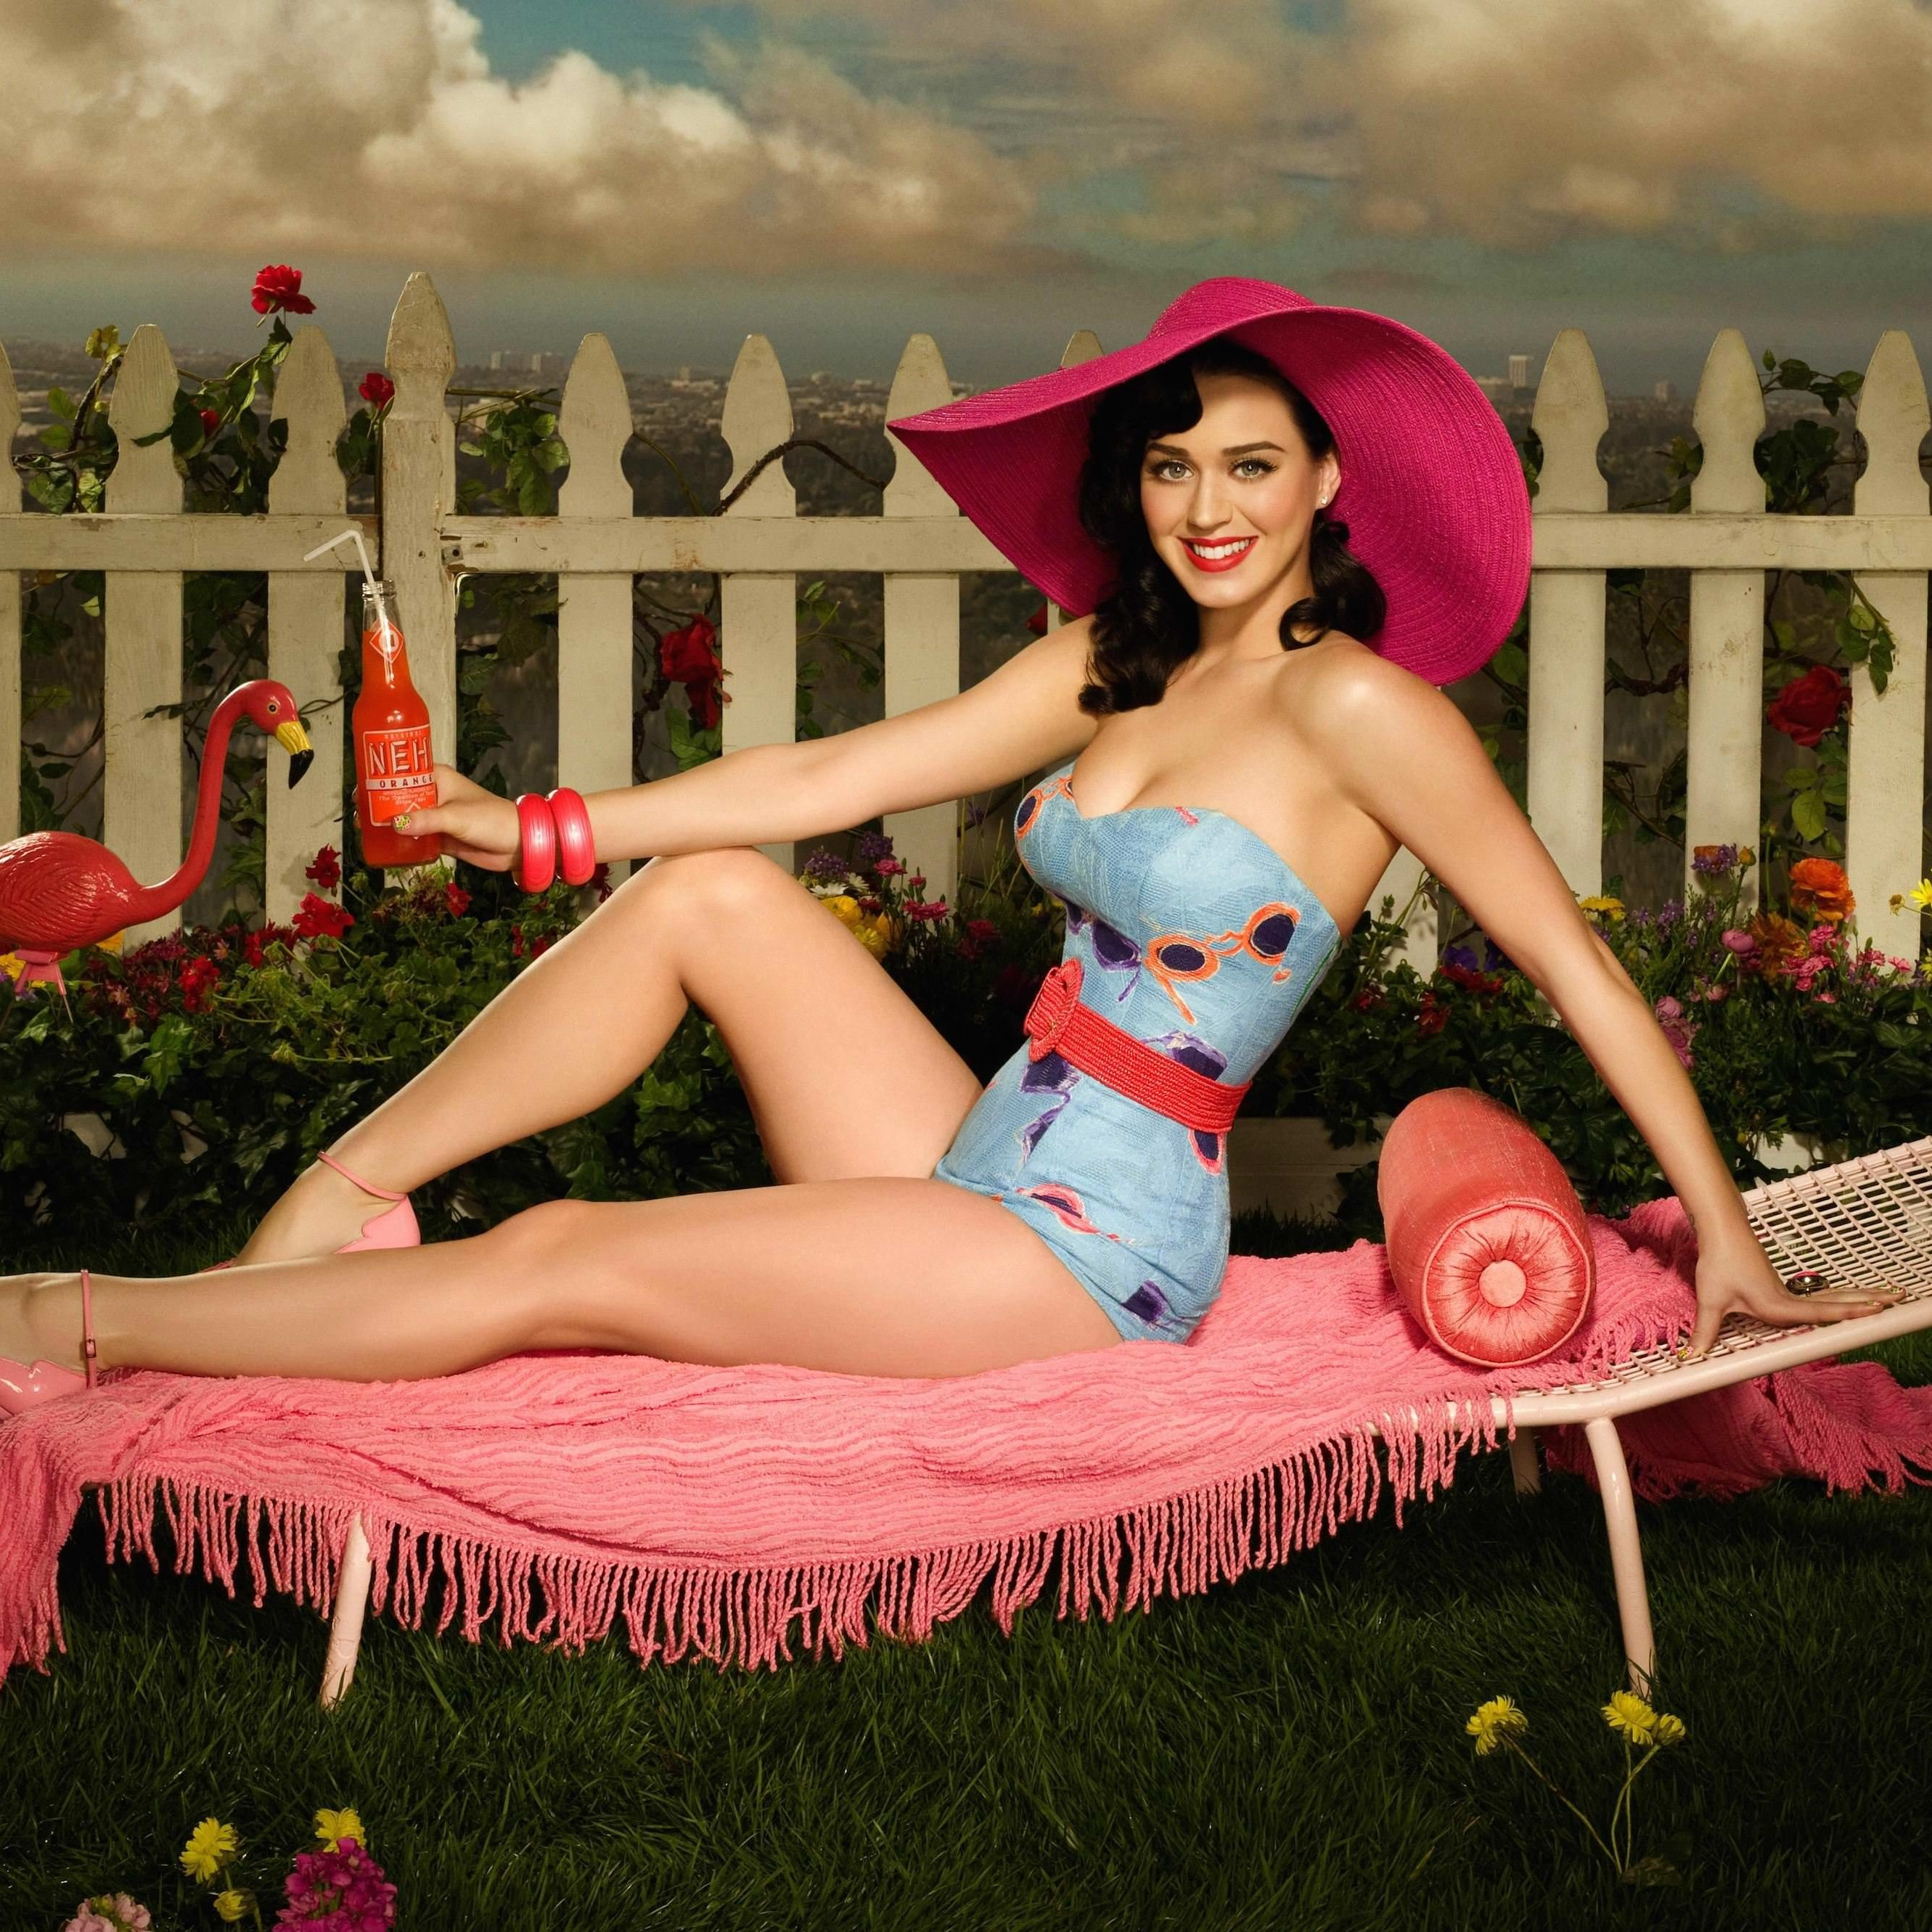 Katy Perry Lying On Chair Body Figure Wallpaper for Apple iPhone 6 Plus